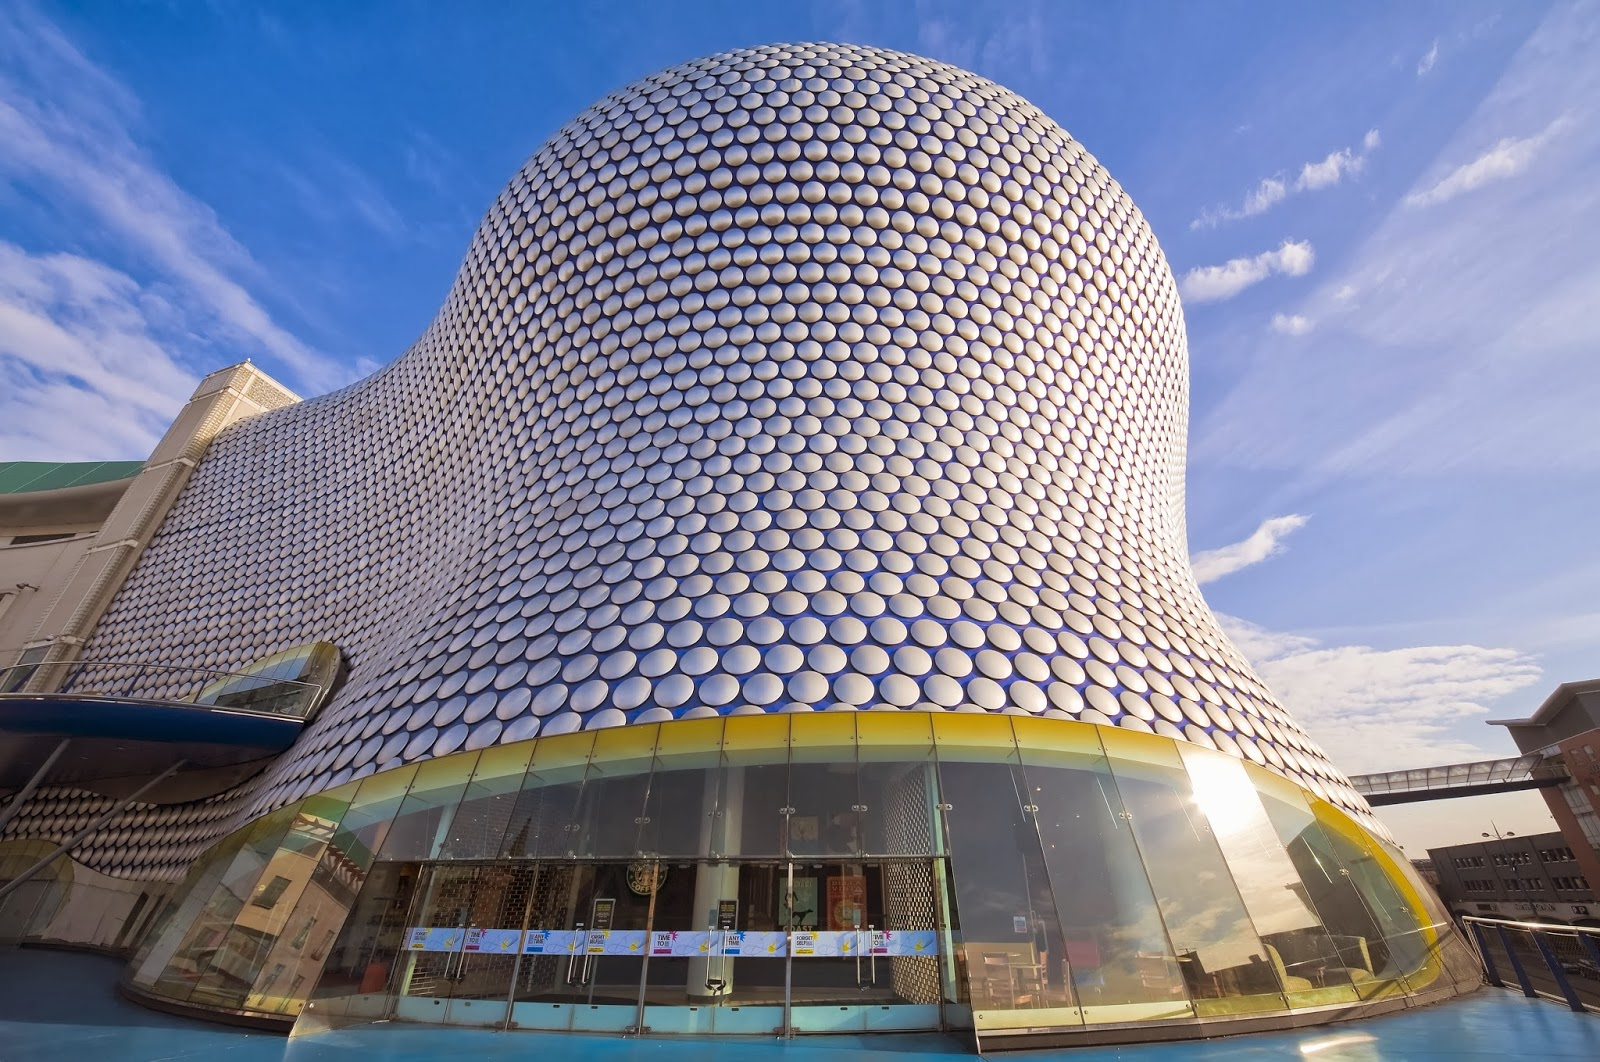 Design selfridges building birmingham - Architecture of a building ...